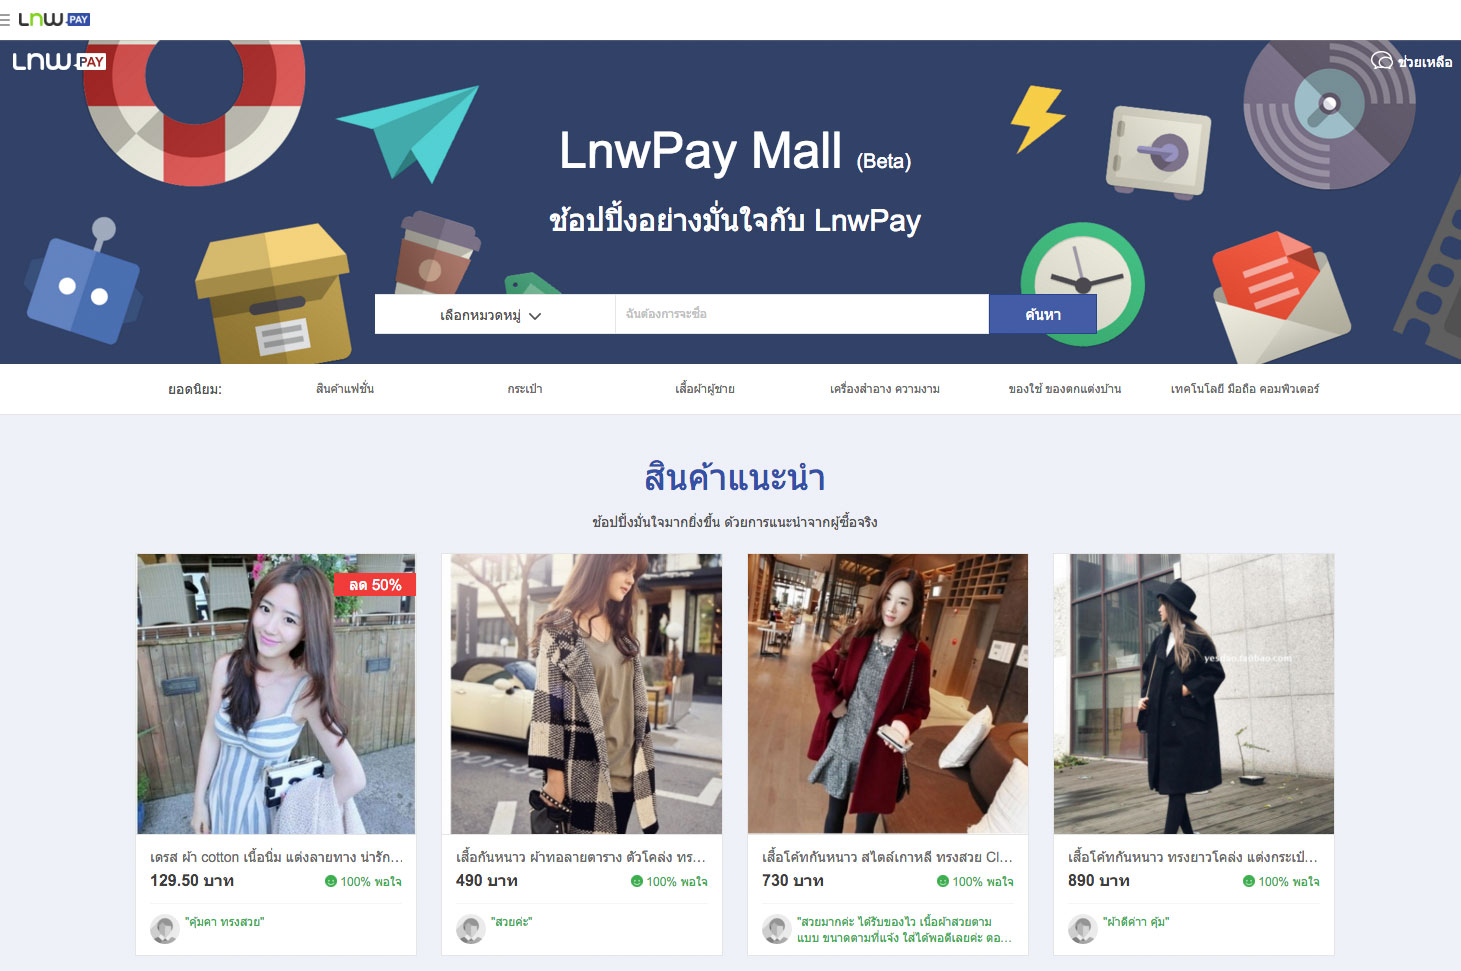 lnwpay mall